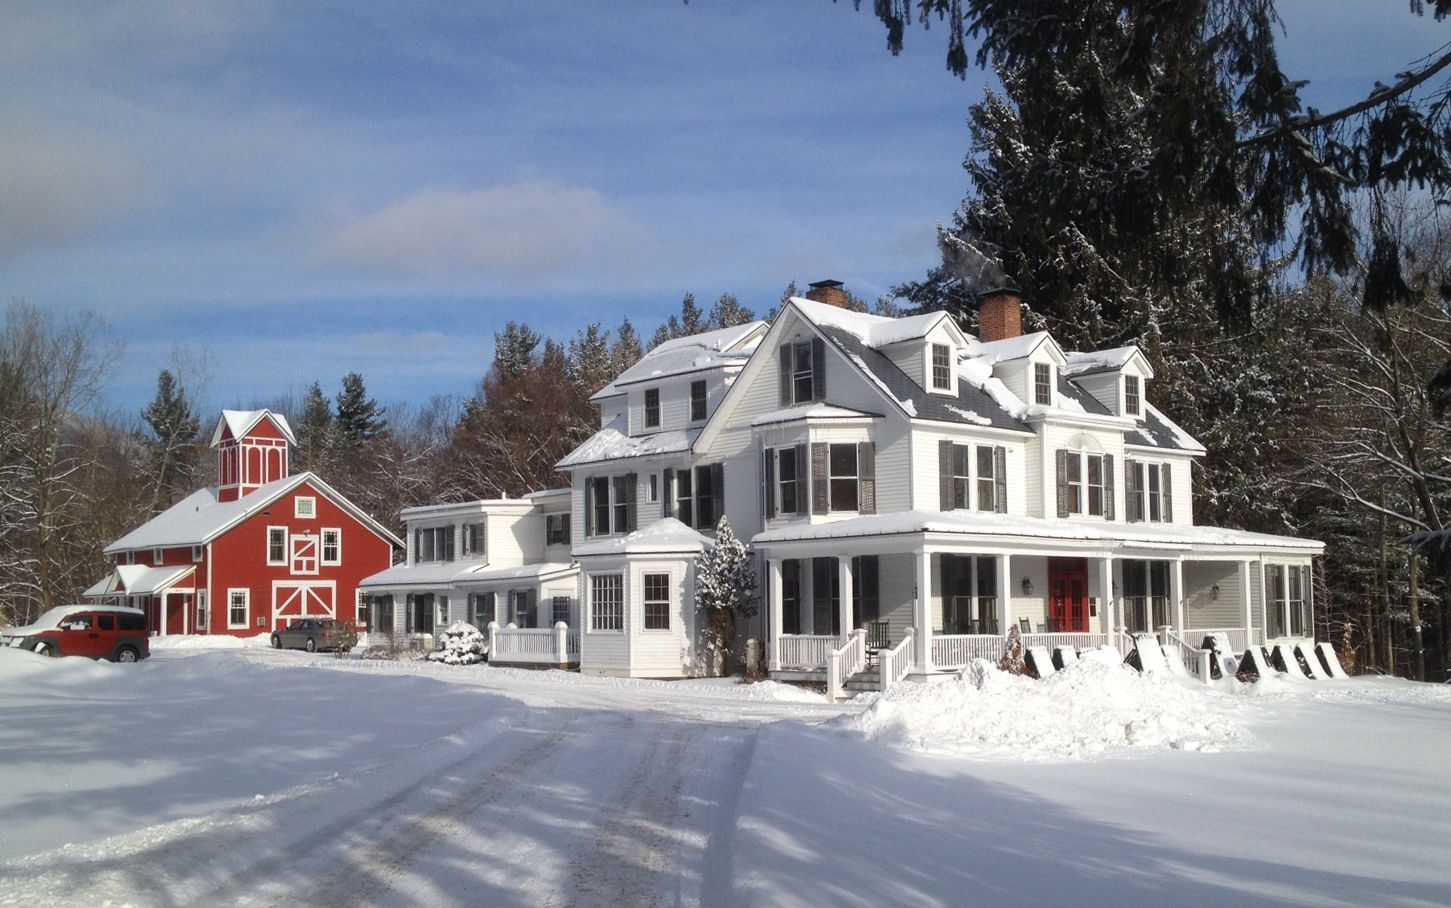 20 of the coziest country inns for the holidays christmas bed and breakfast